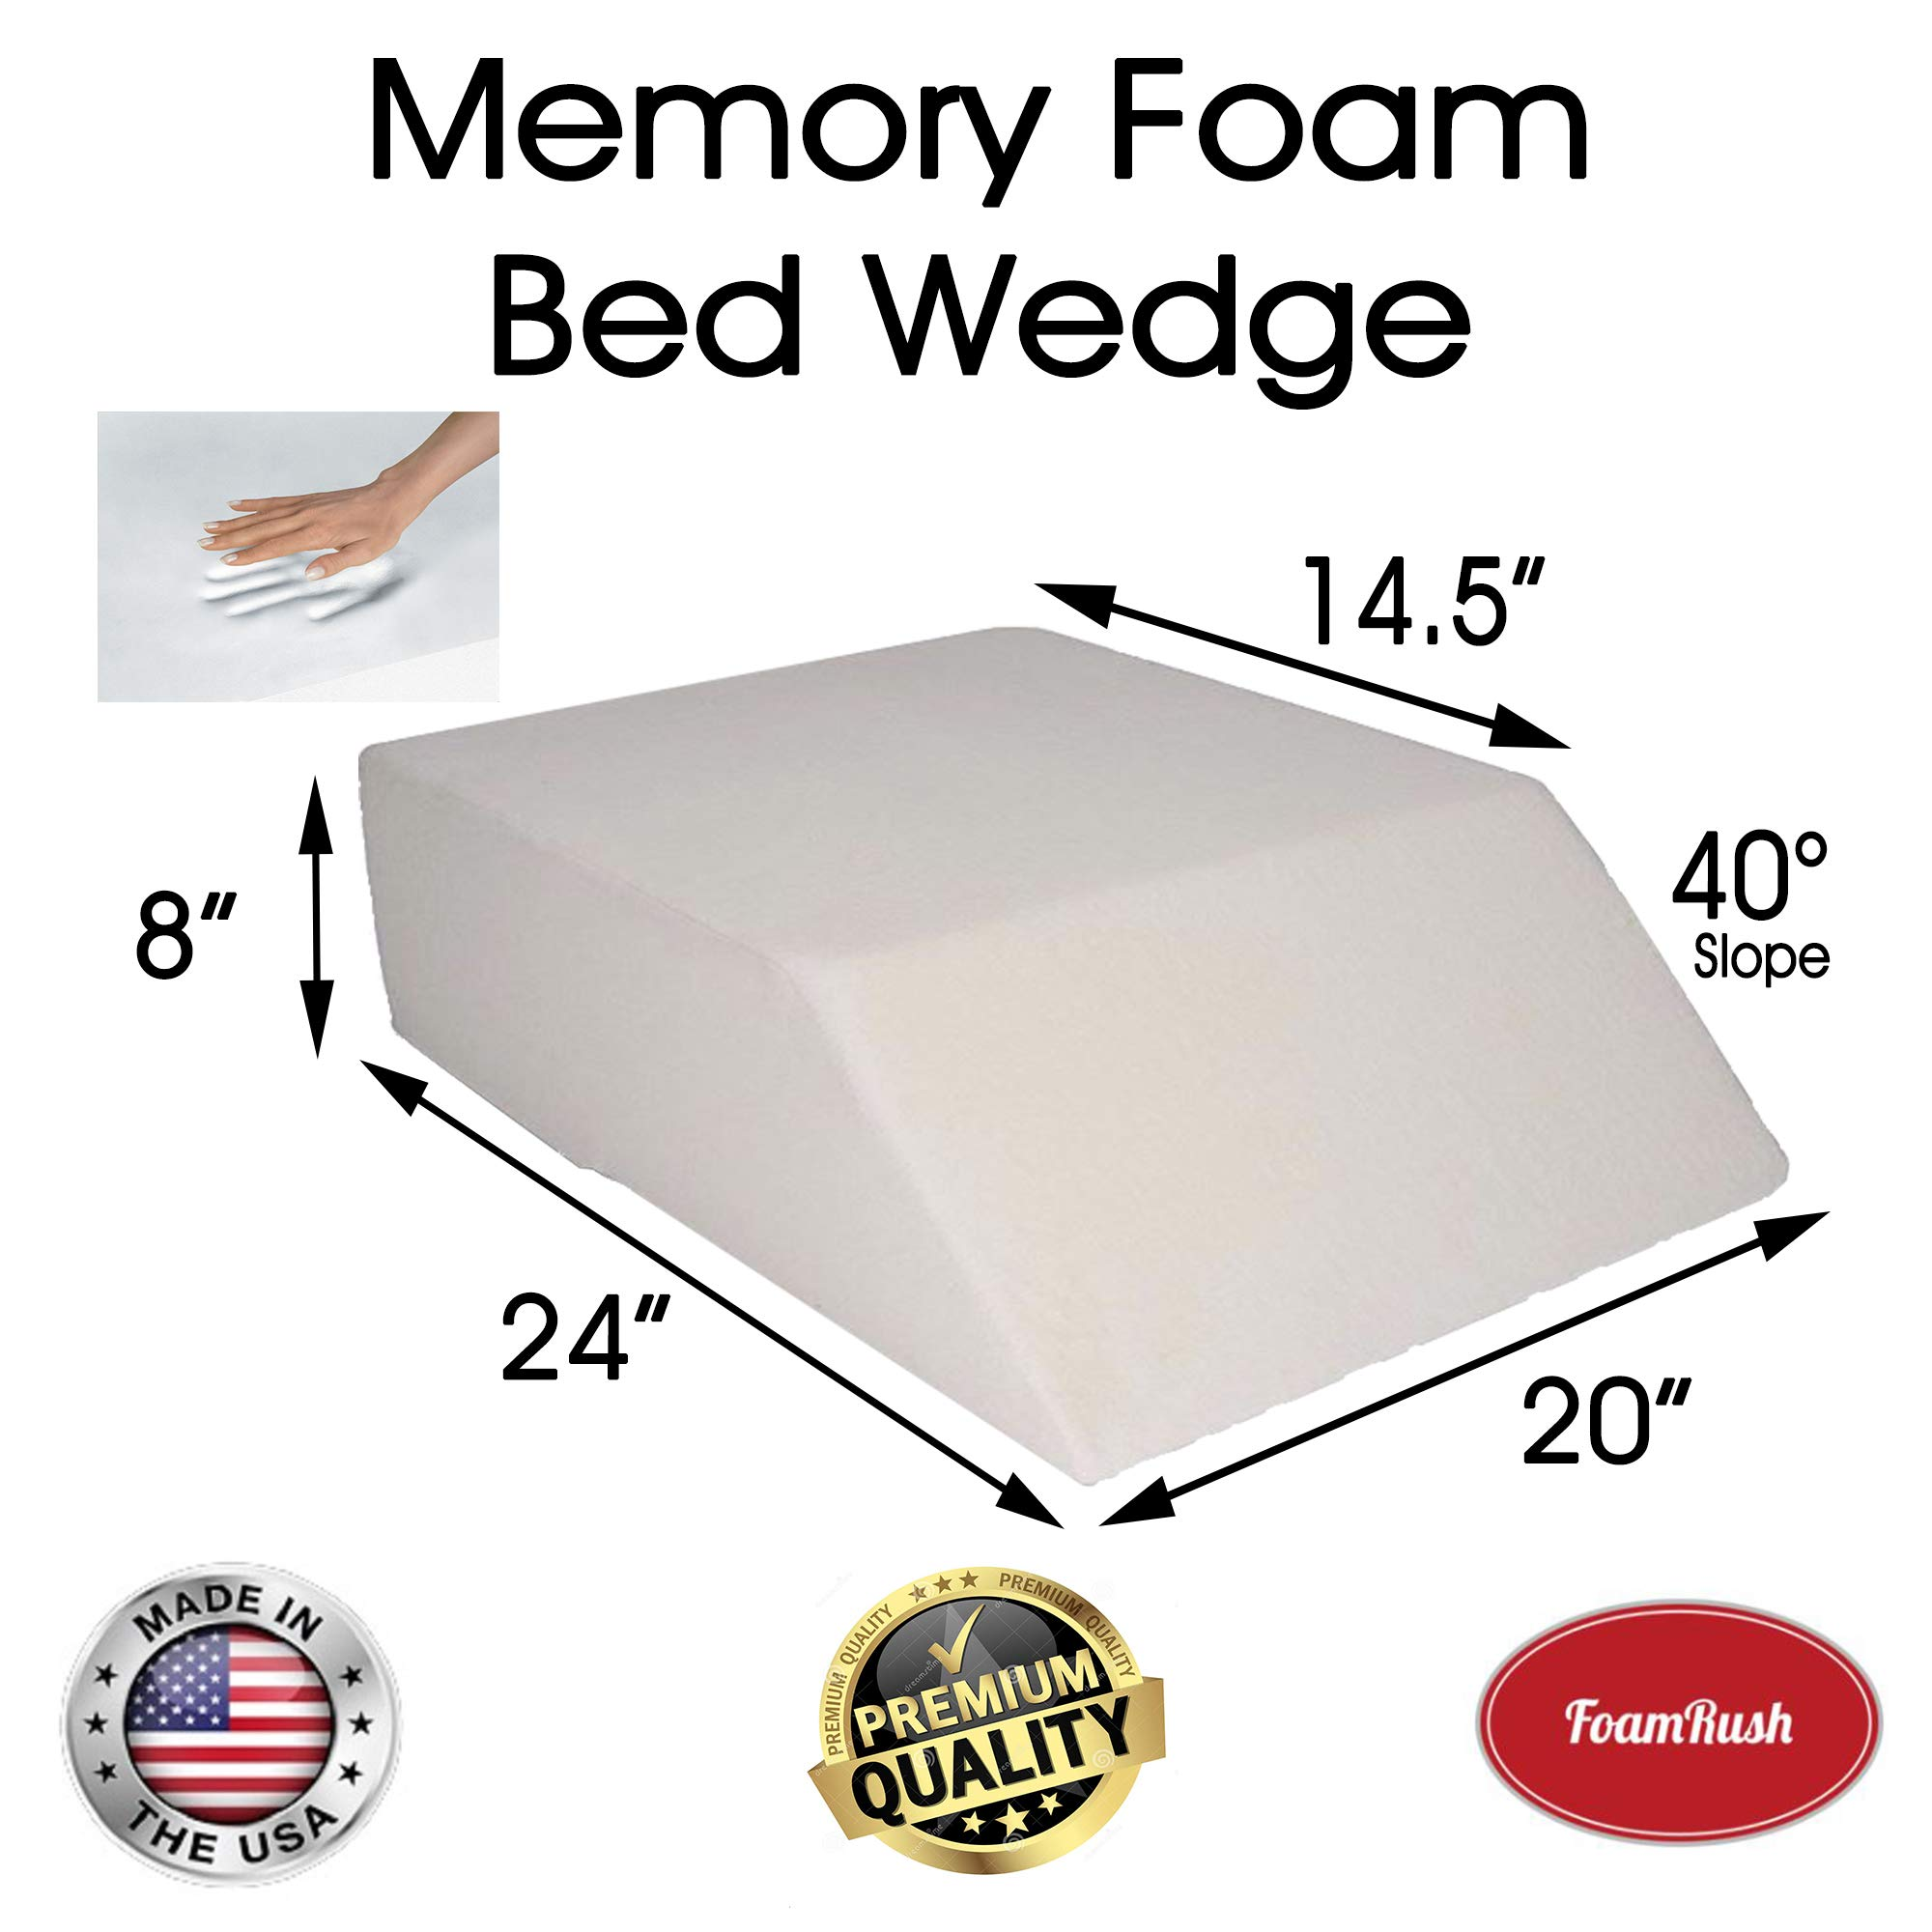 FoamRush 8'' H x 20'' W x 24'' L Premium Quality Therapeautic Ortho Supportive Bed Wedge Foam Cushion Replacement (Best for Back, Hip and Knee Pain Relief, Foot and Ankle Injury and Recovery Wedge) by FoamRush